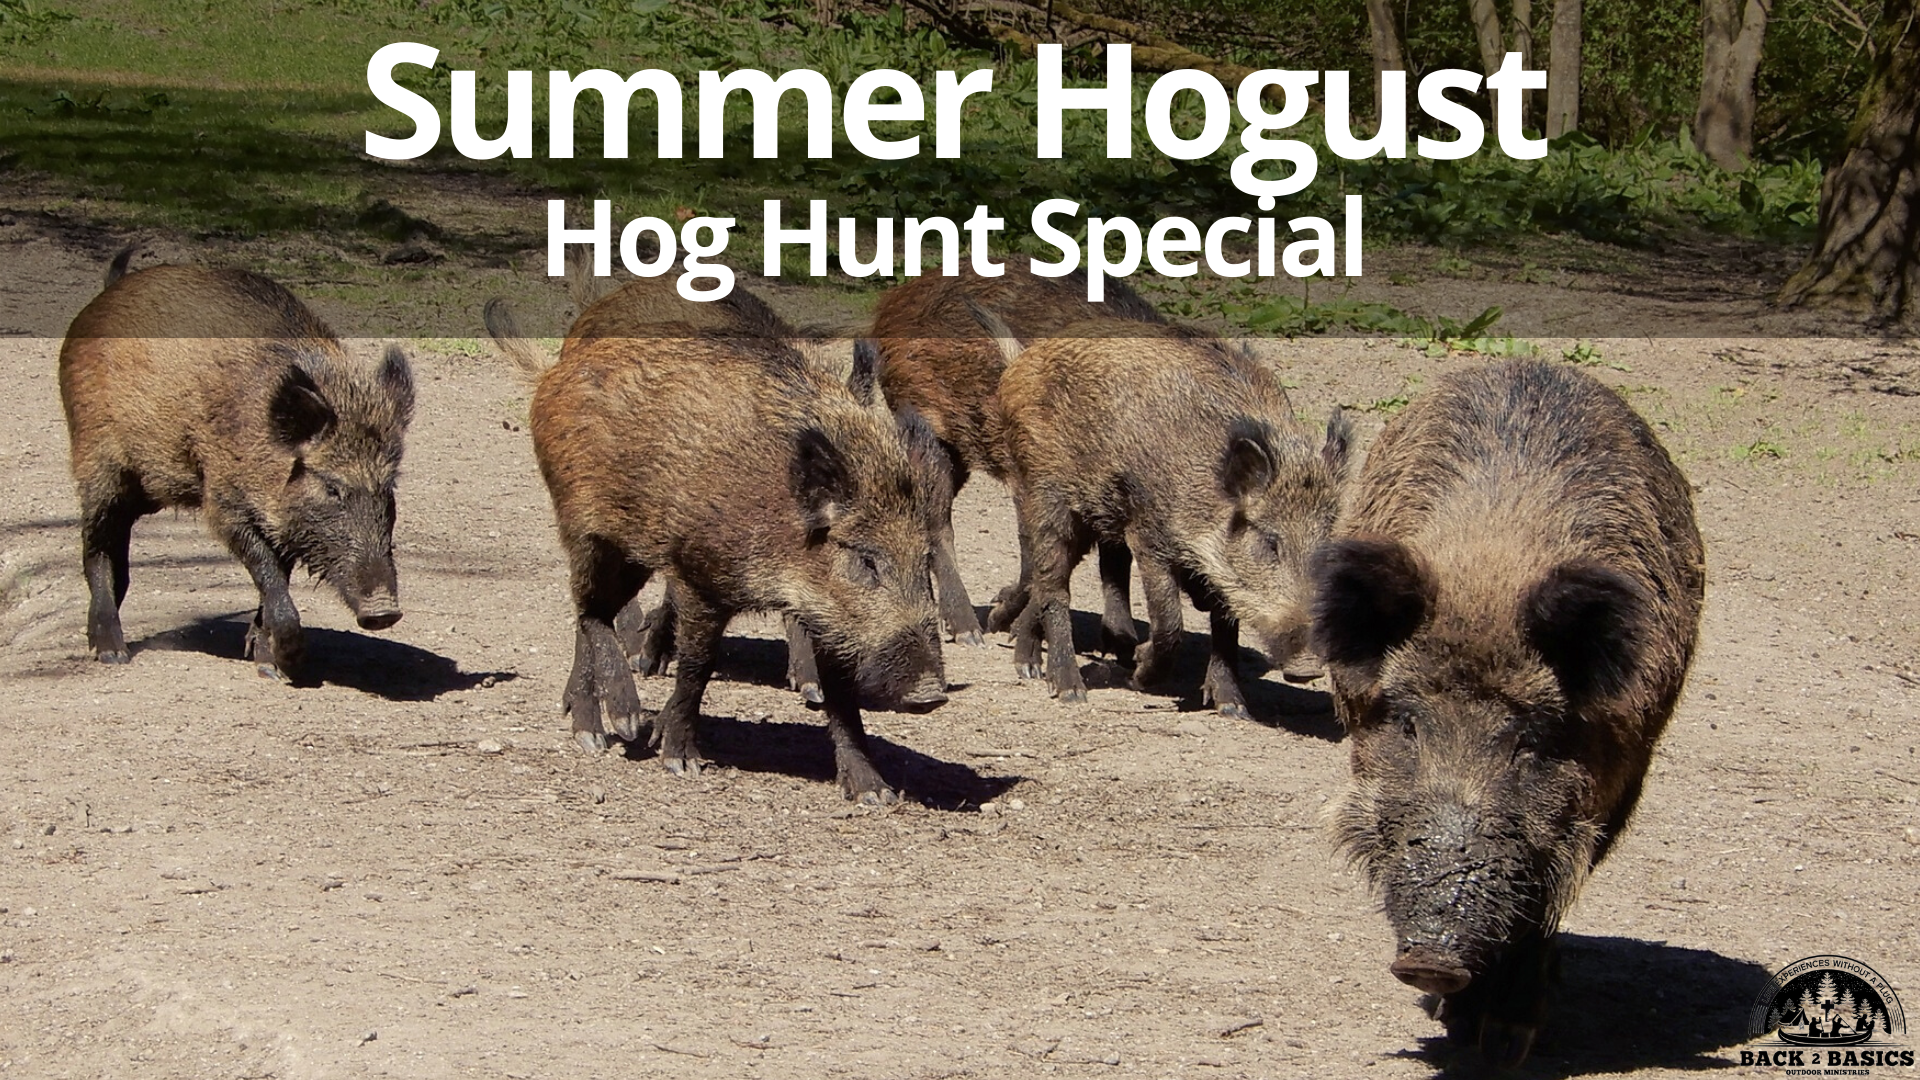 Summer Hogust Hunt Special, half day hog hunt central florida, back2basics outdoor ministries